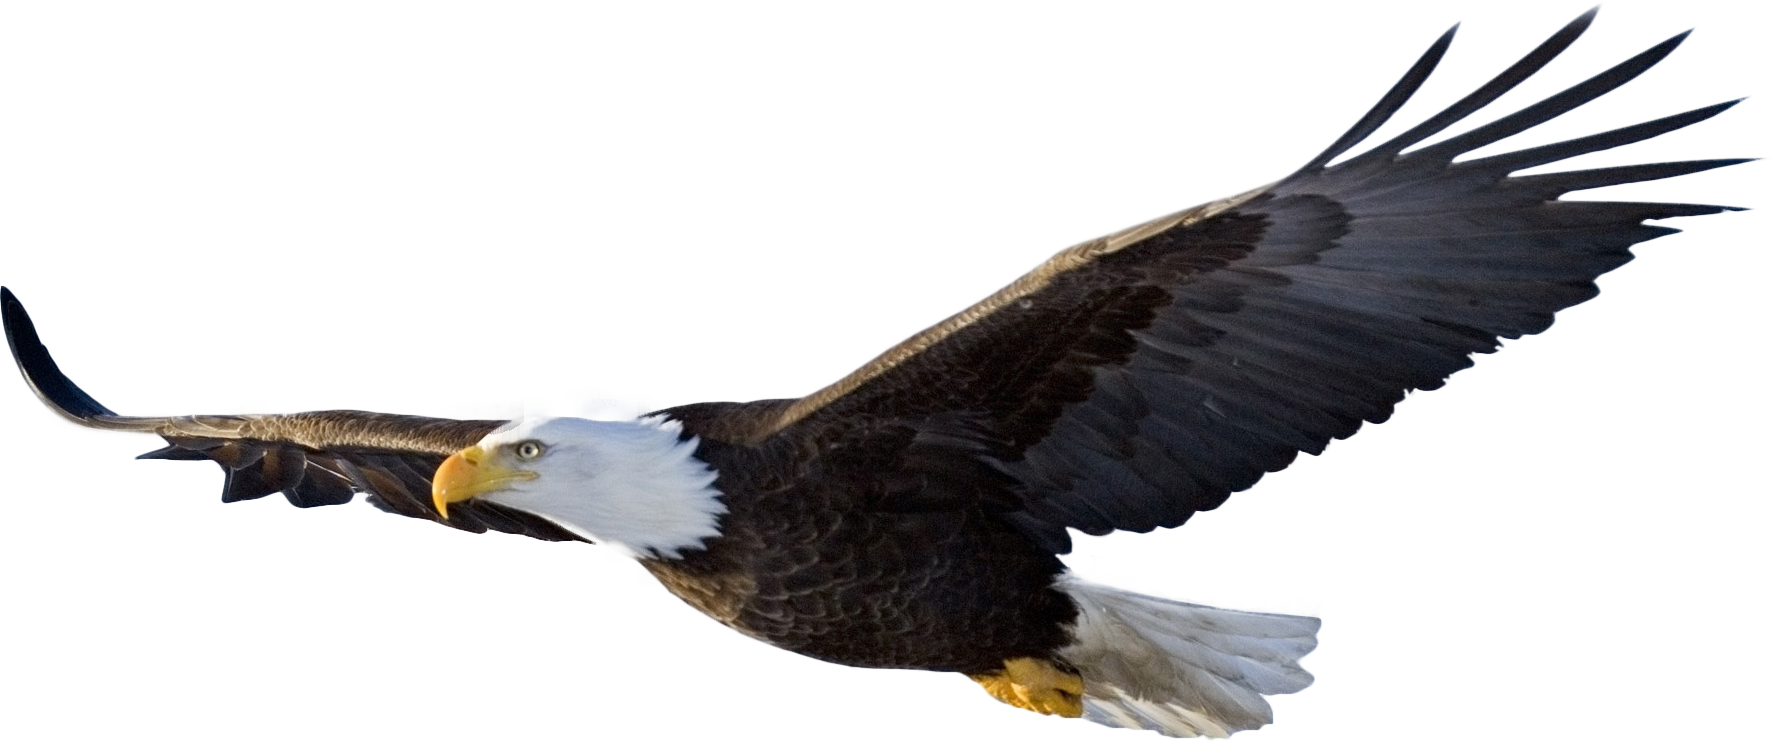 Imgur The Most Awesome Images On The Internet Eagle In Flight Bald Eagle Bald Eagle Images